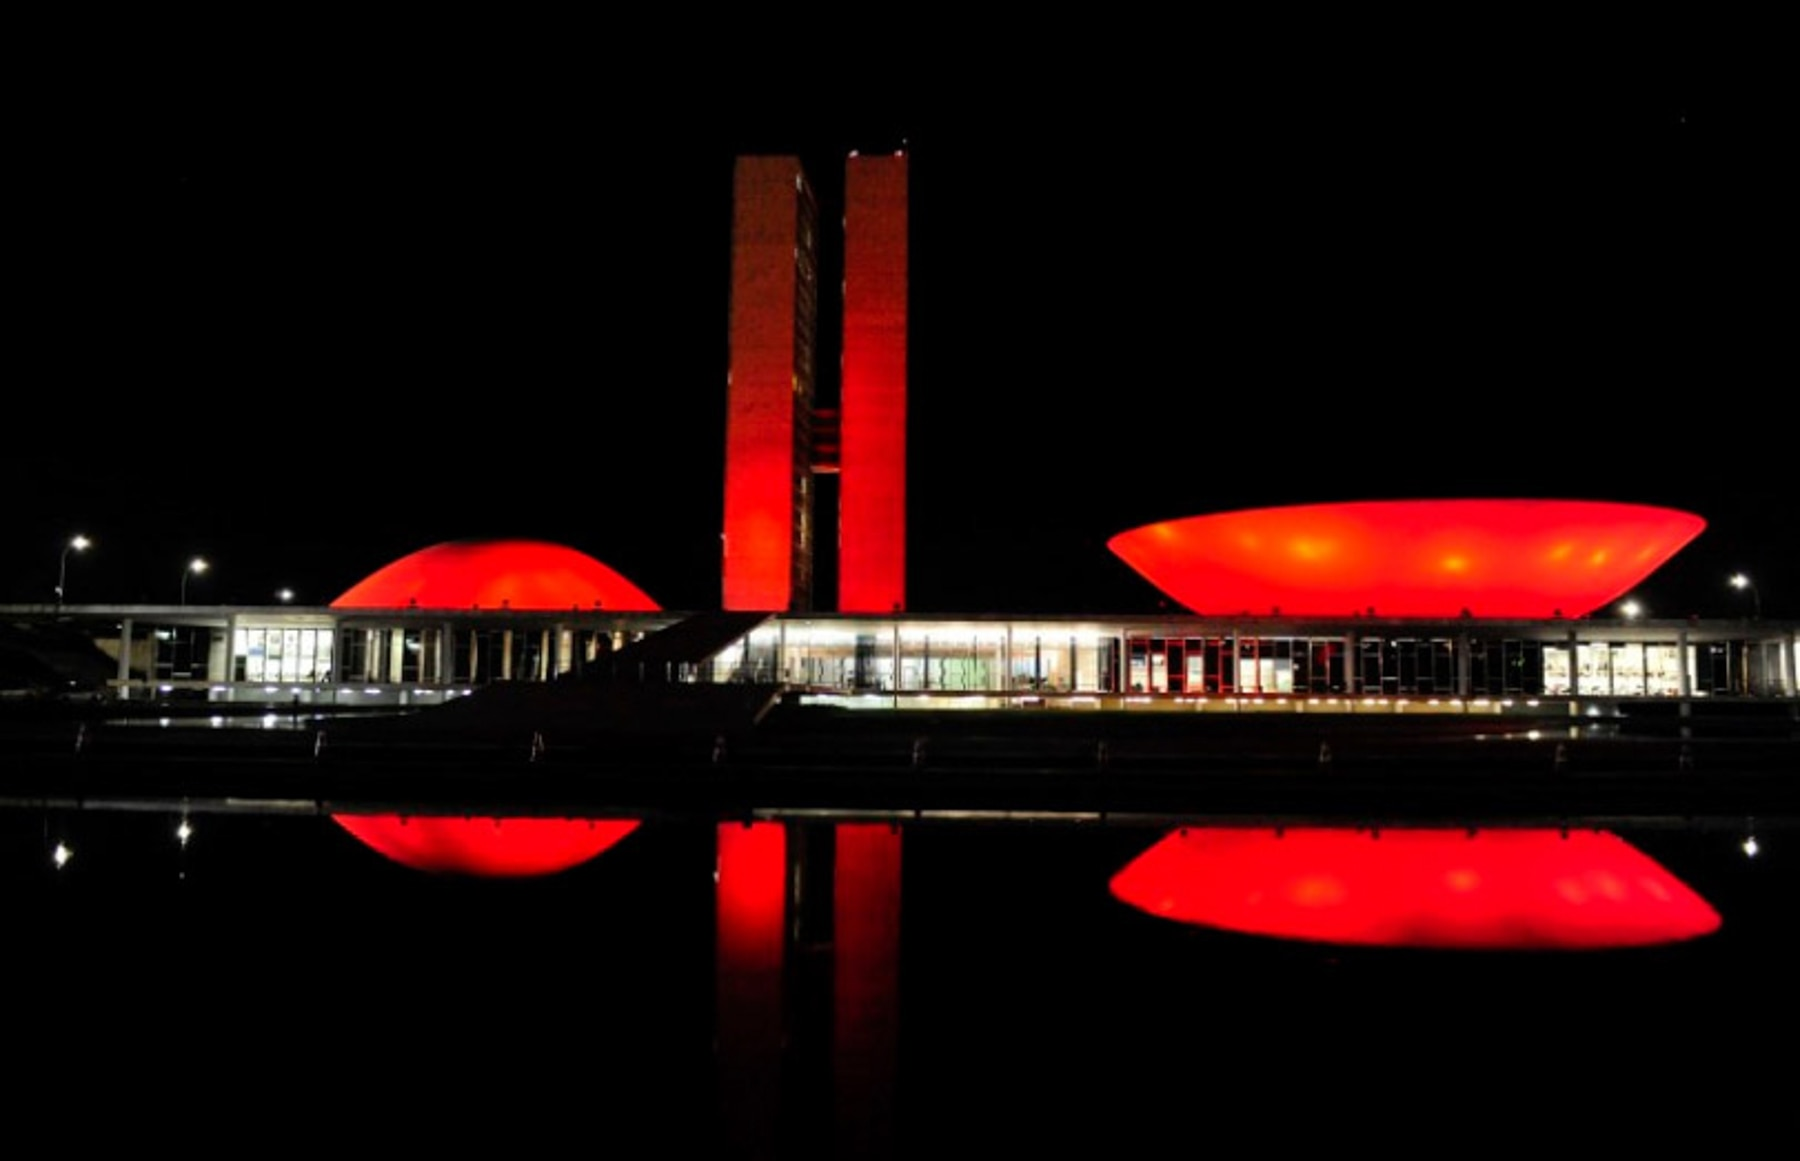 Building shining red and reflected in water at night (Stop TB Partnership)